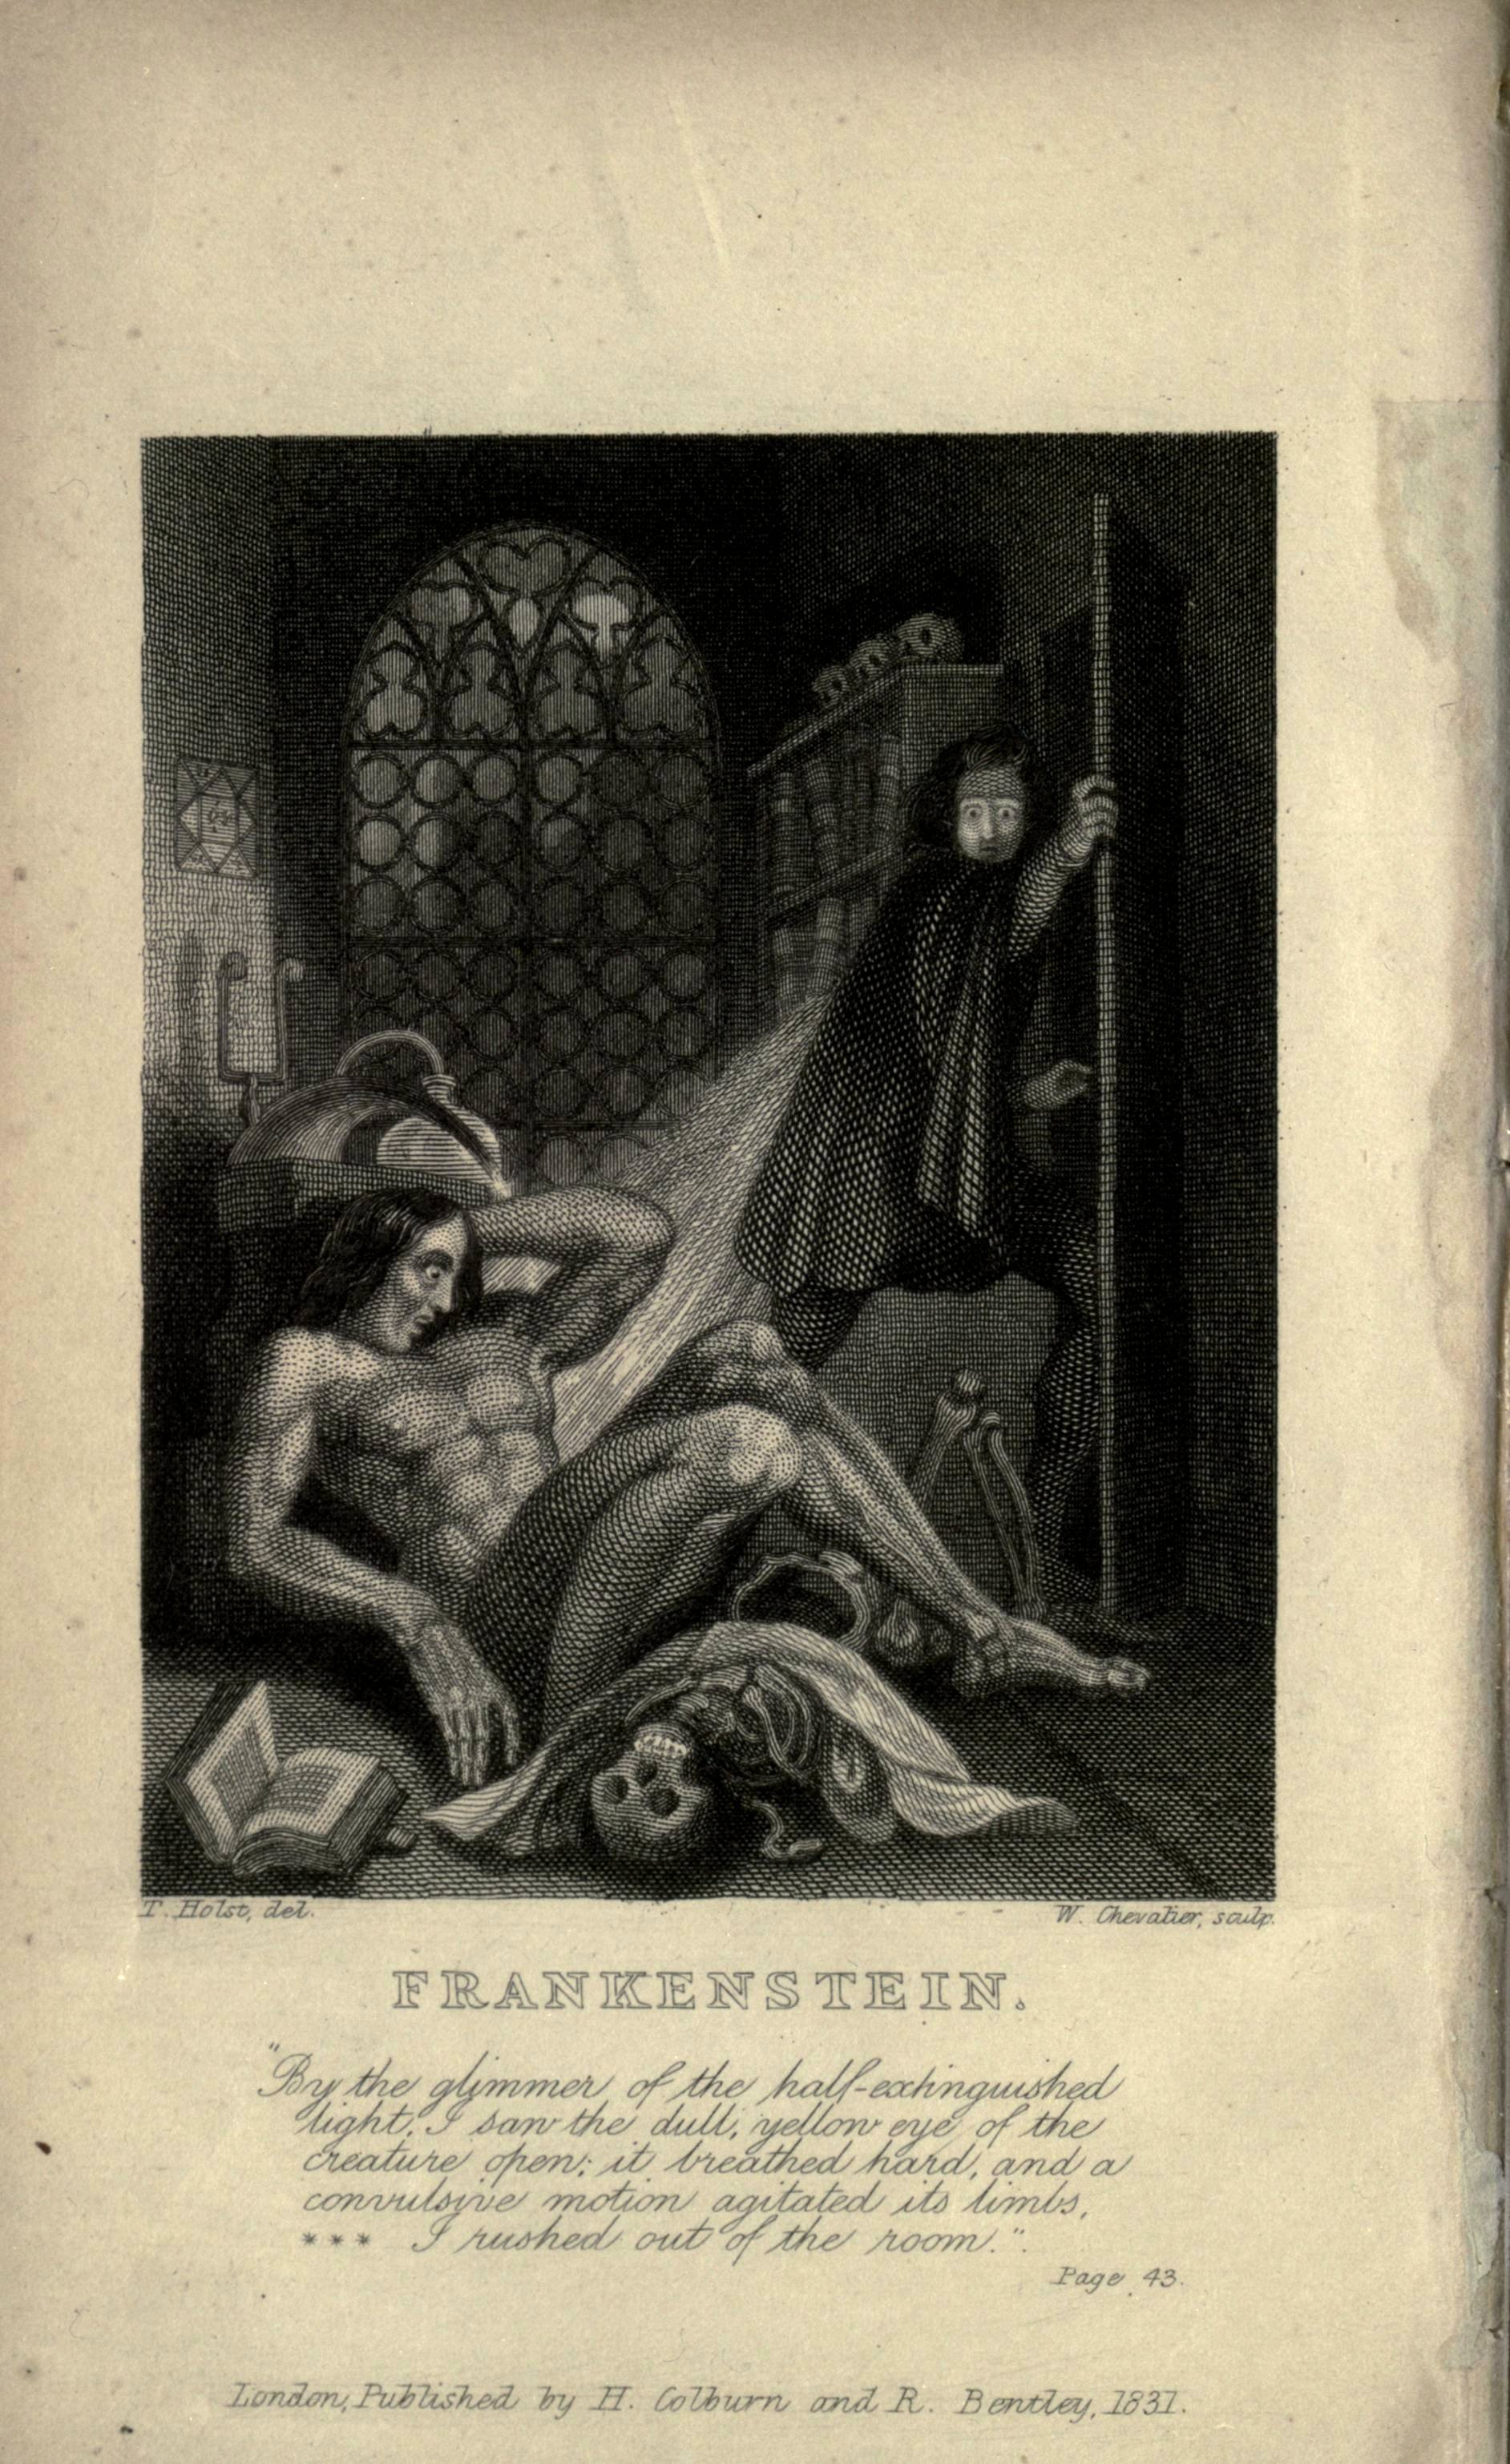 Victor Frankenstein becoming disgusted at his creation. Illustration from the frontispiece of the 1831 edition, one of the first two illustrations for the novel. Steel engraving (993 x 71mm) to the revised edition of Frankenstein by Mary Shelley, published by Colburn and Bentley, London 1831.